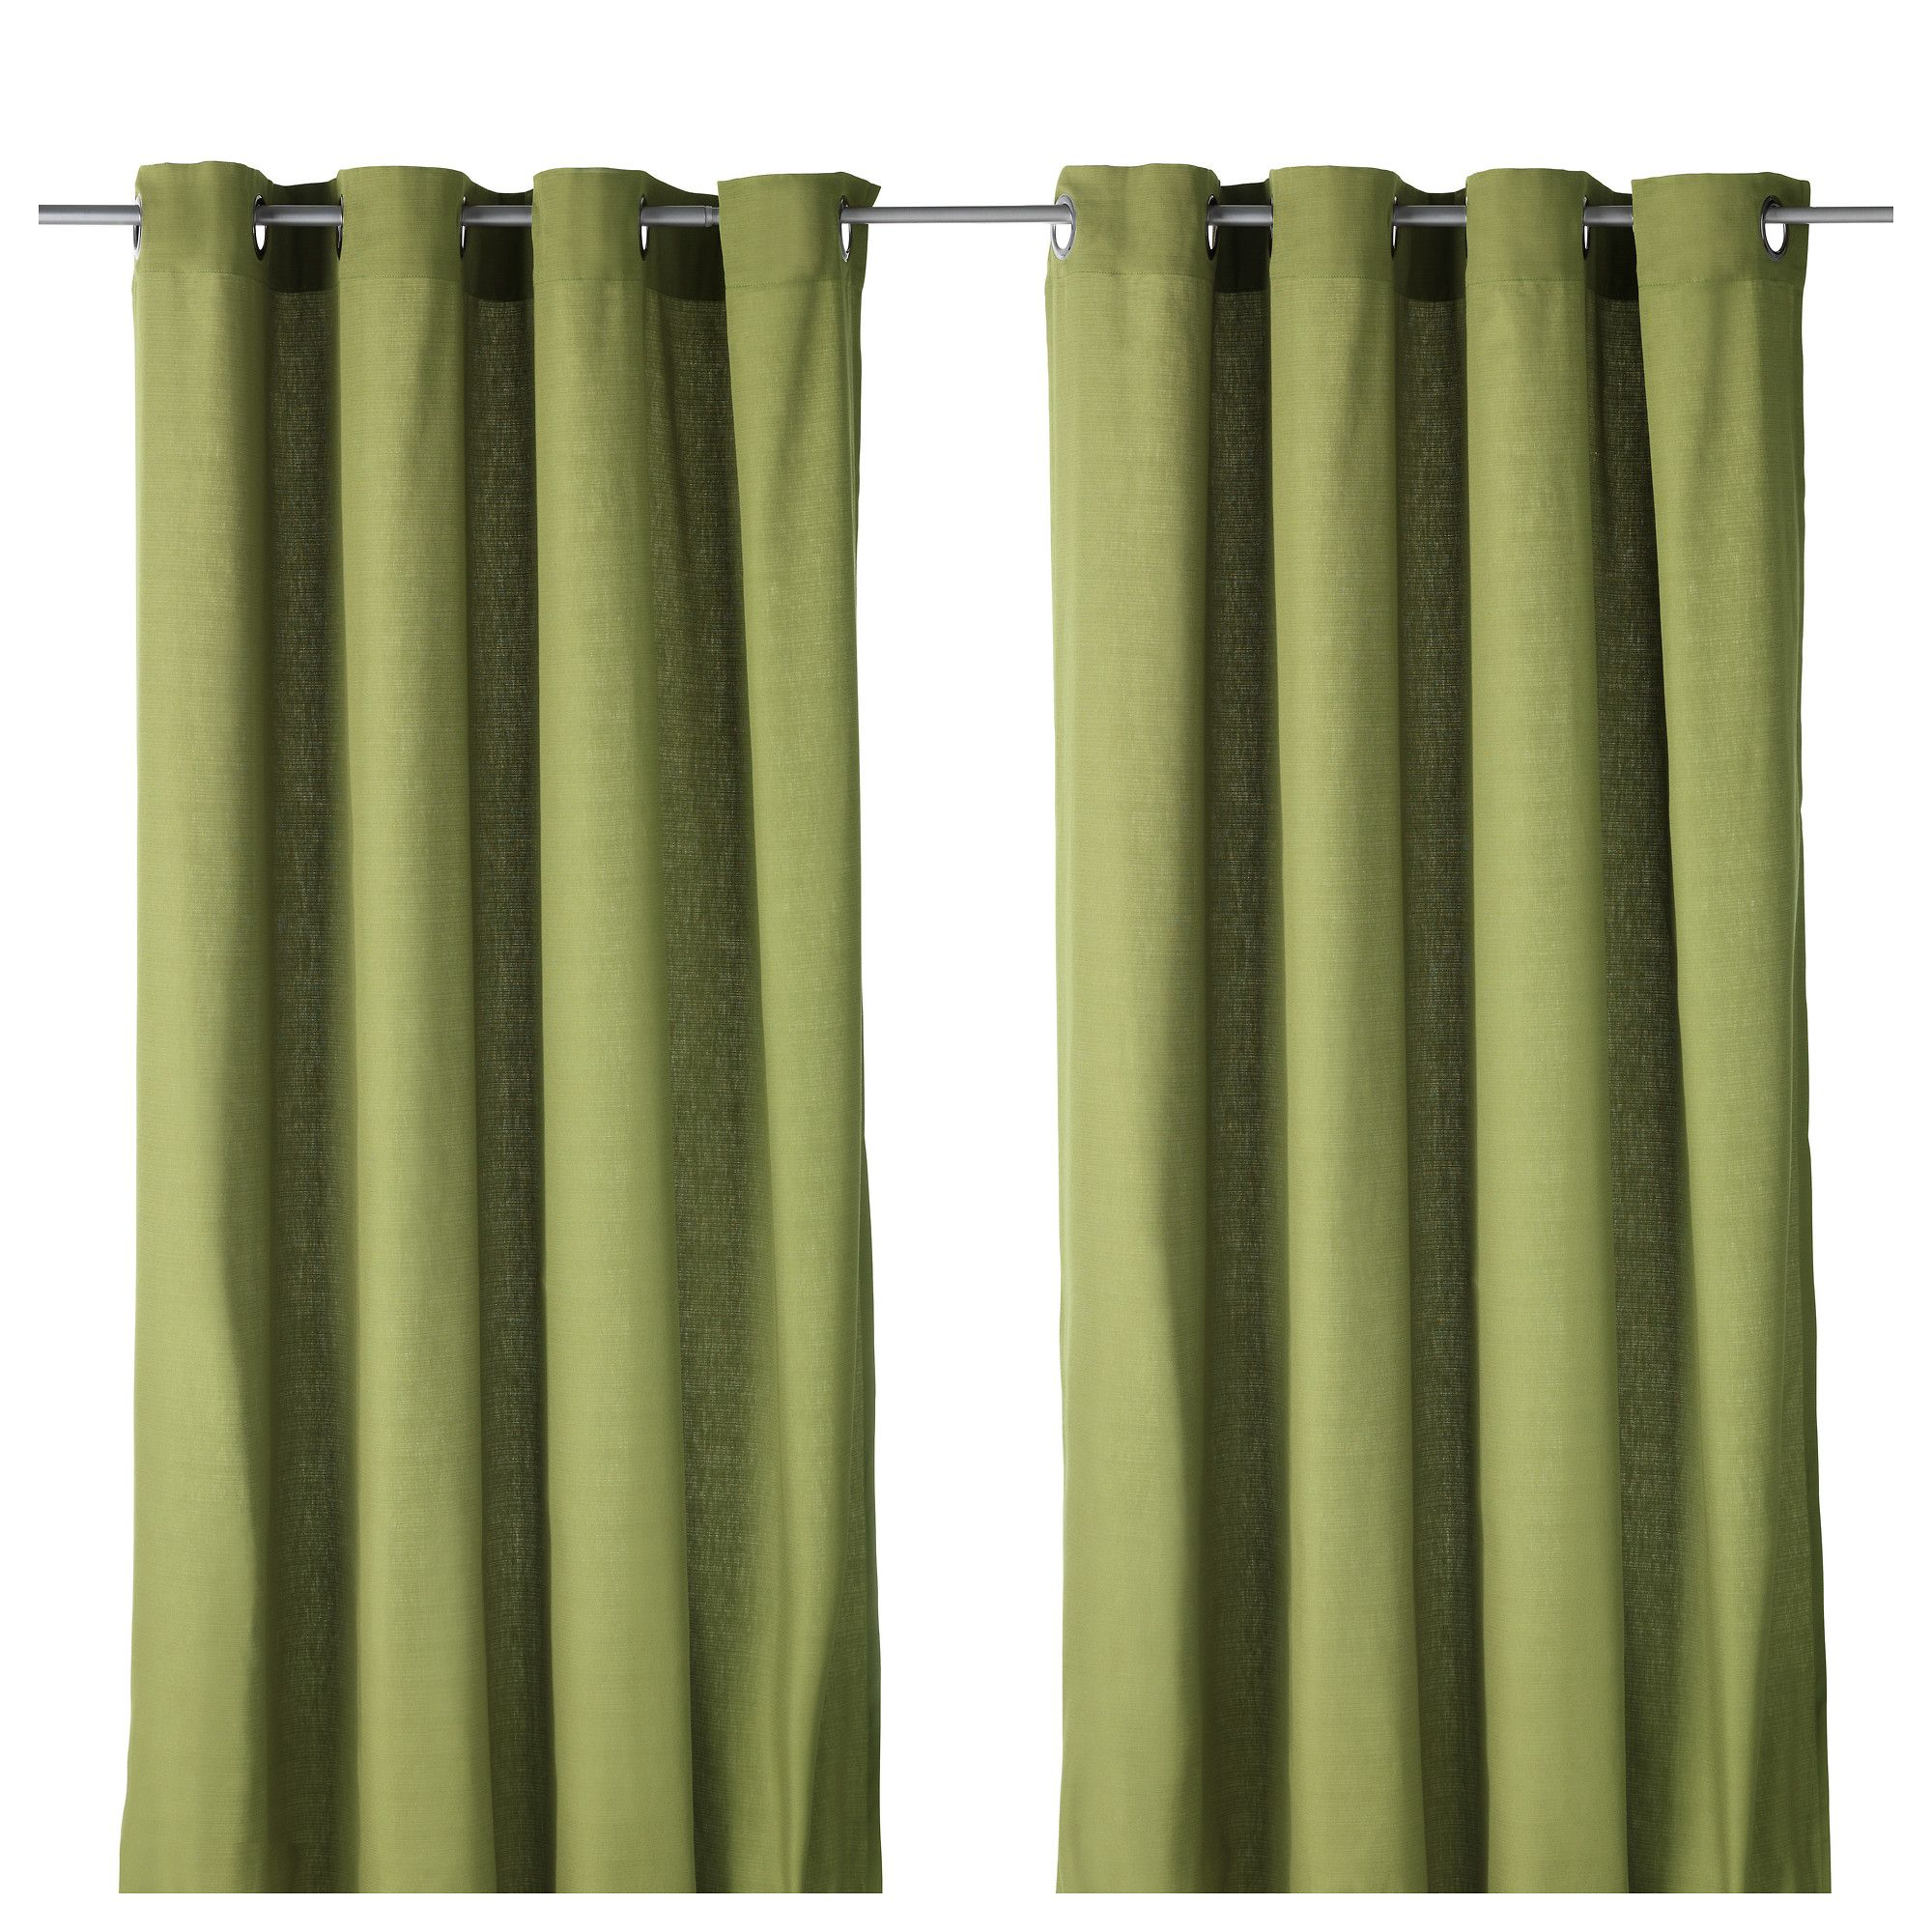 Mariam Curtains 1 Pair Ikea These Aren T Bad For The Kitchen But I D Really Rather Have White With Green Print On It To Bring More Light Into